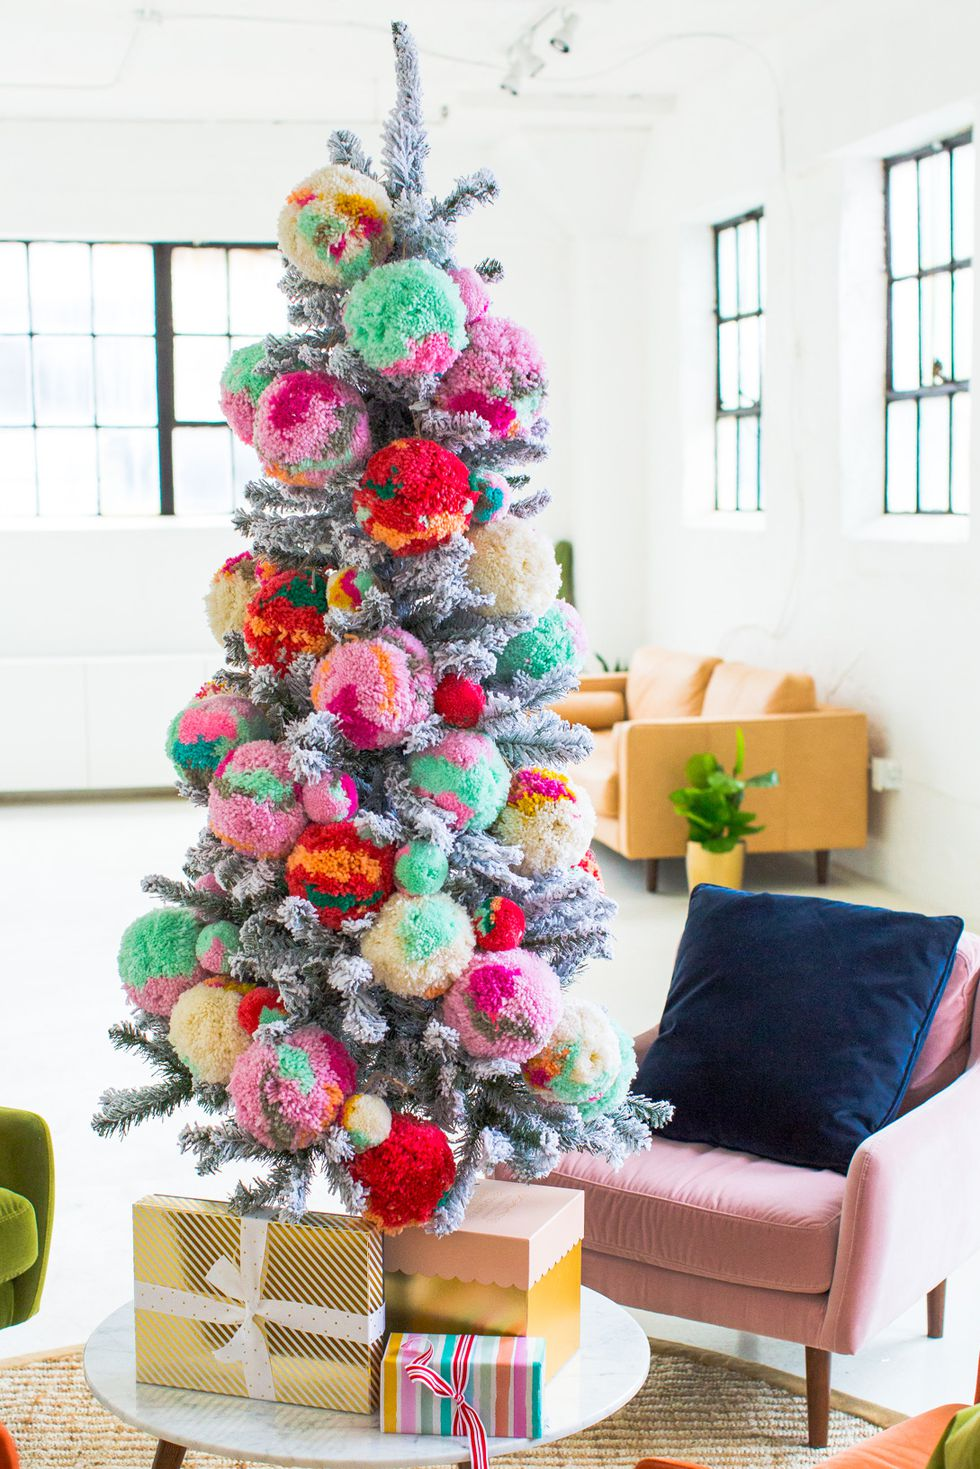 astounding decoration cool pictures ideas for small | Different And Cool Ways To Decorate The Christmas Tree ...